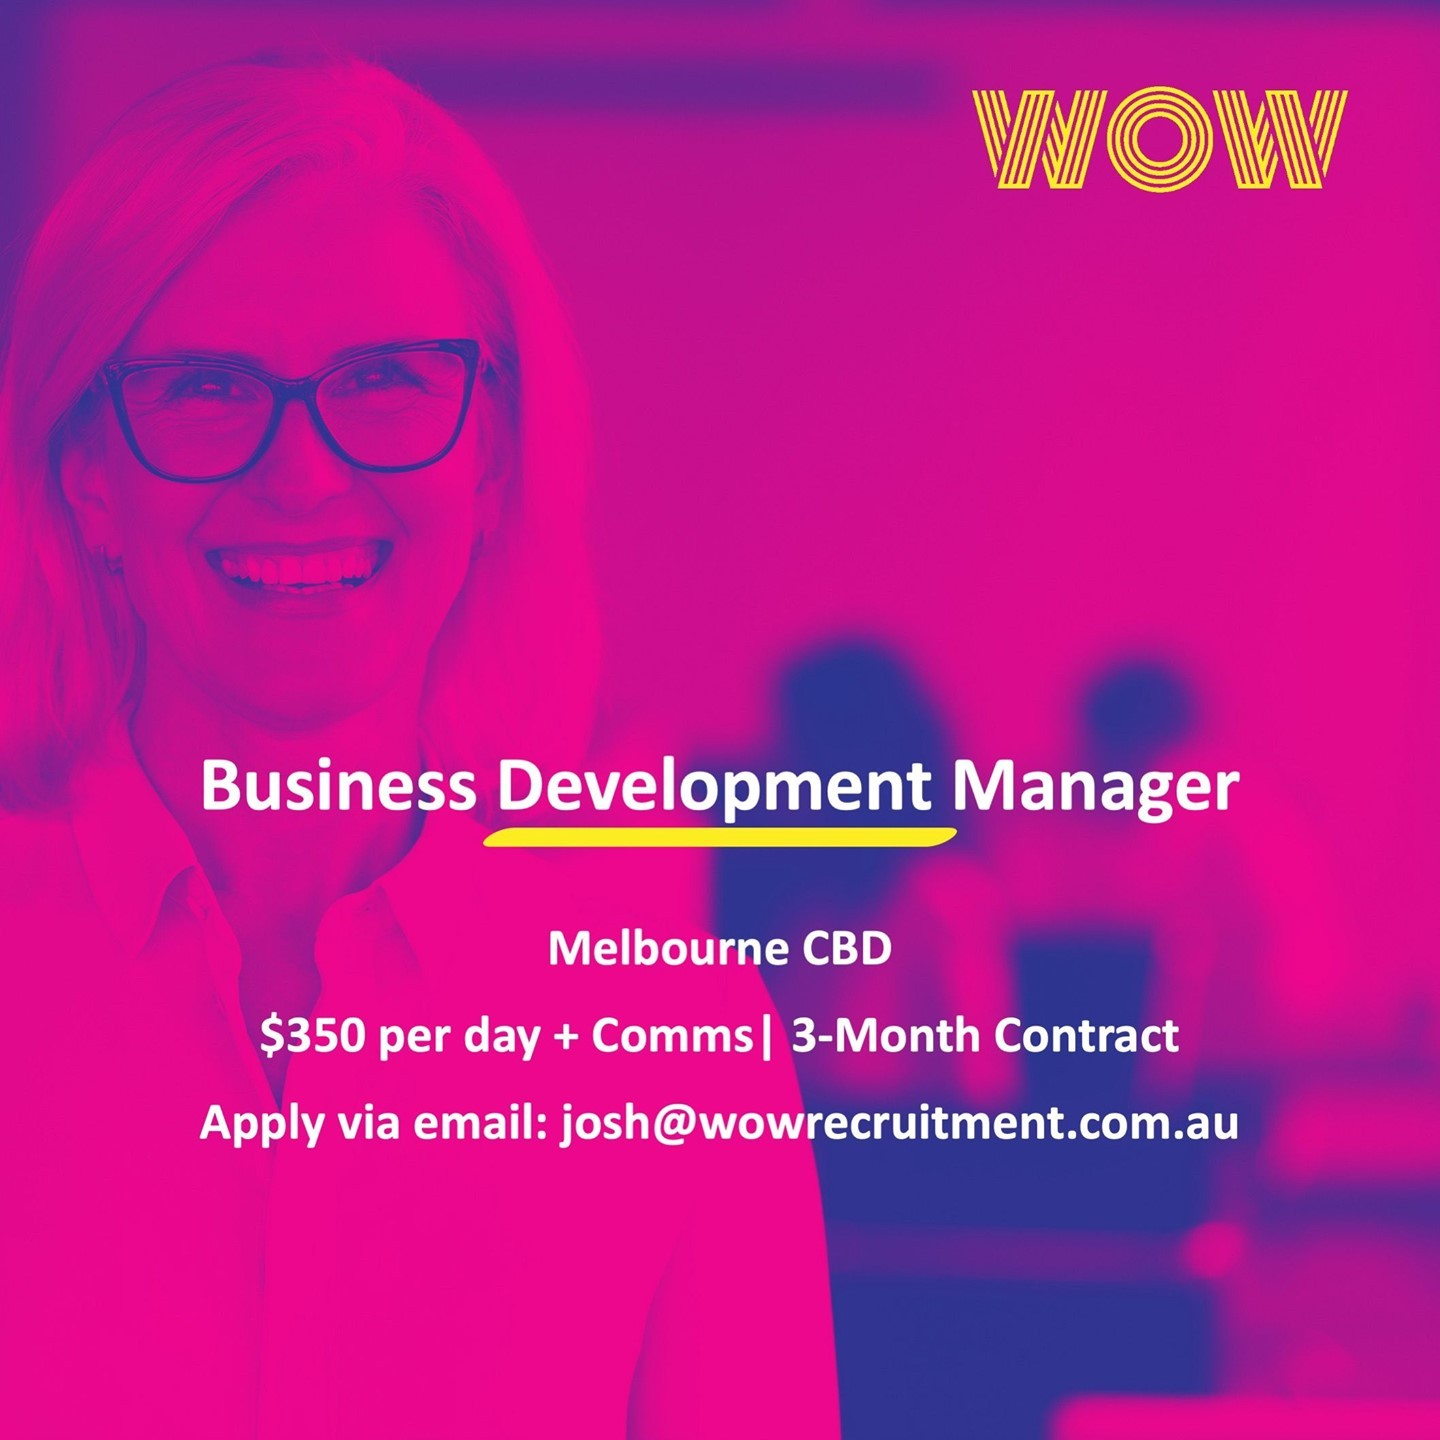 WOW Recruitment are looking for an experienced BDM to join one of our Digital Marketing clients in Melbourne CBD for a 3 month contract, with the possibility of extension. If you'd like to learn more, please reach out to our Sales and Marketing Recruitment Specialist, Josh via email at josh@wowrecruitment.com.au 👥  ⠀⠀#Sales #Recruitment #BDM #Marketing #DoWhatYouLove #WorkHappy